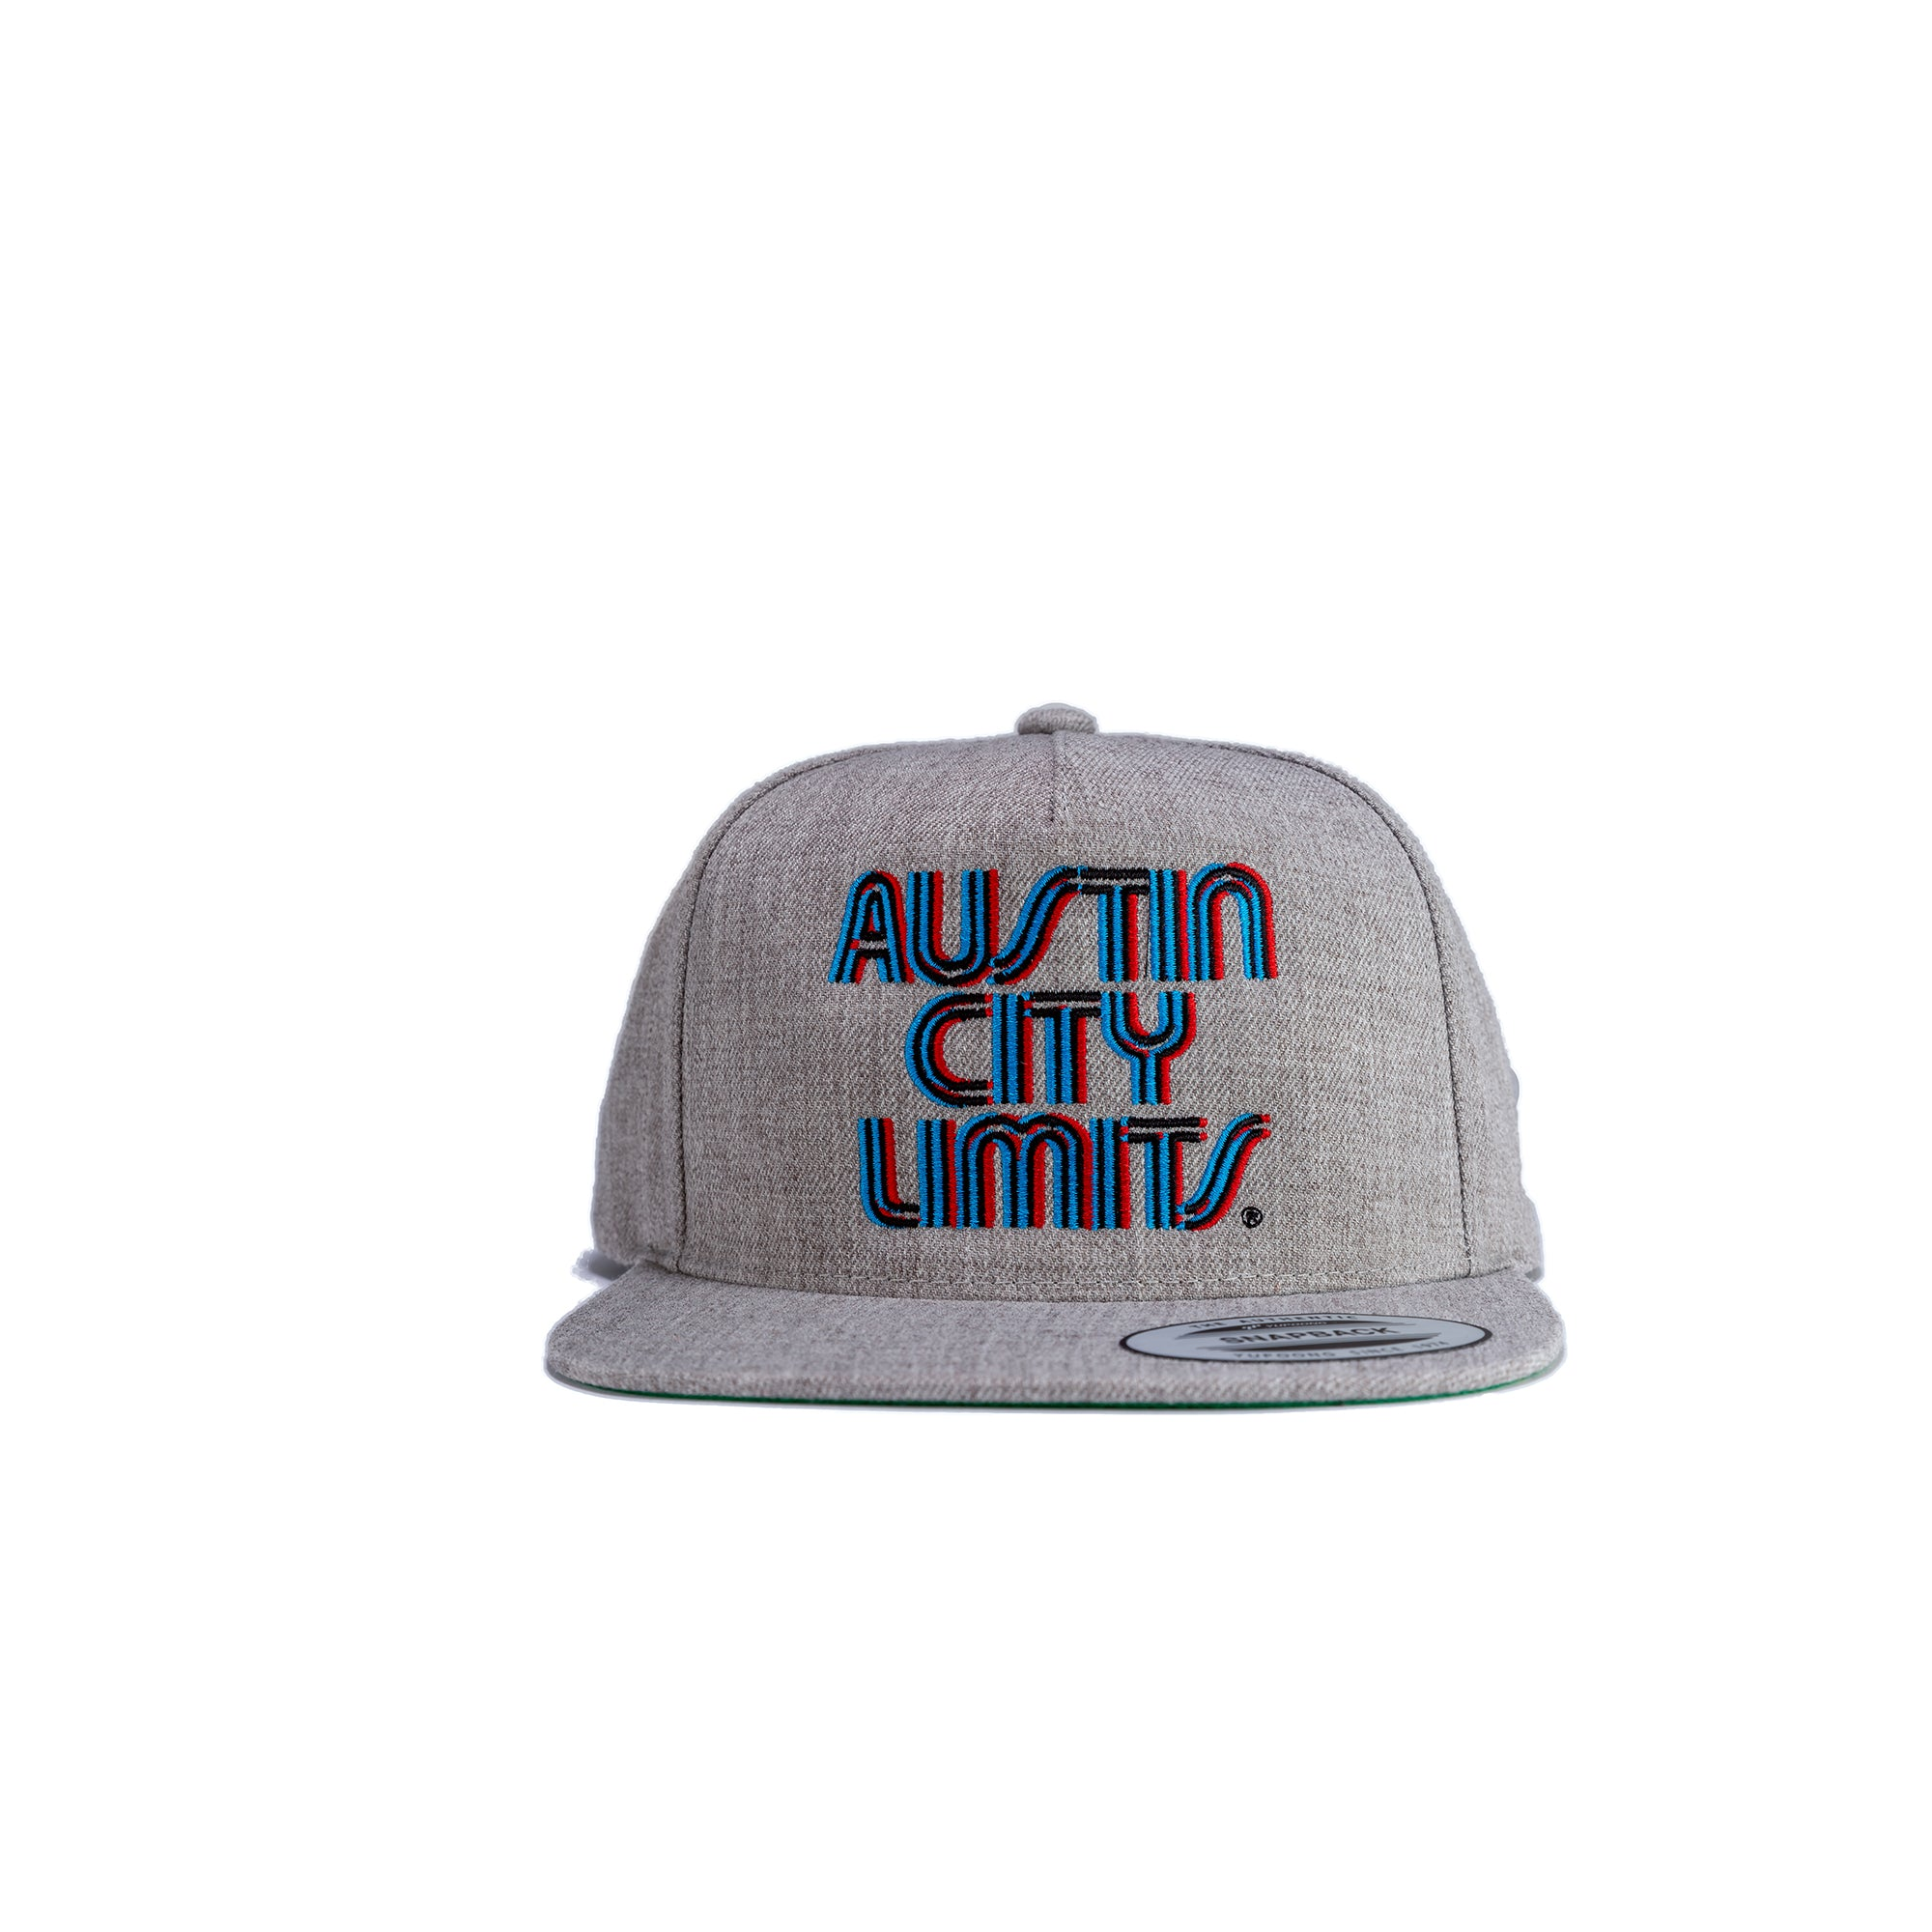 Austin City Limits Offset Triple Stitch Premium Flat Bill Snapback